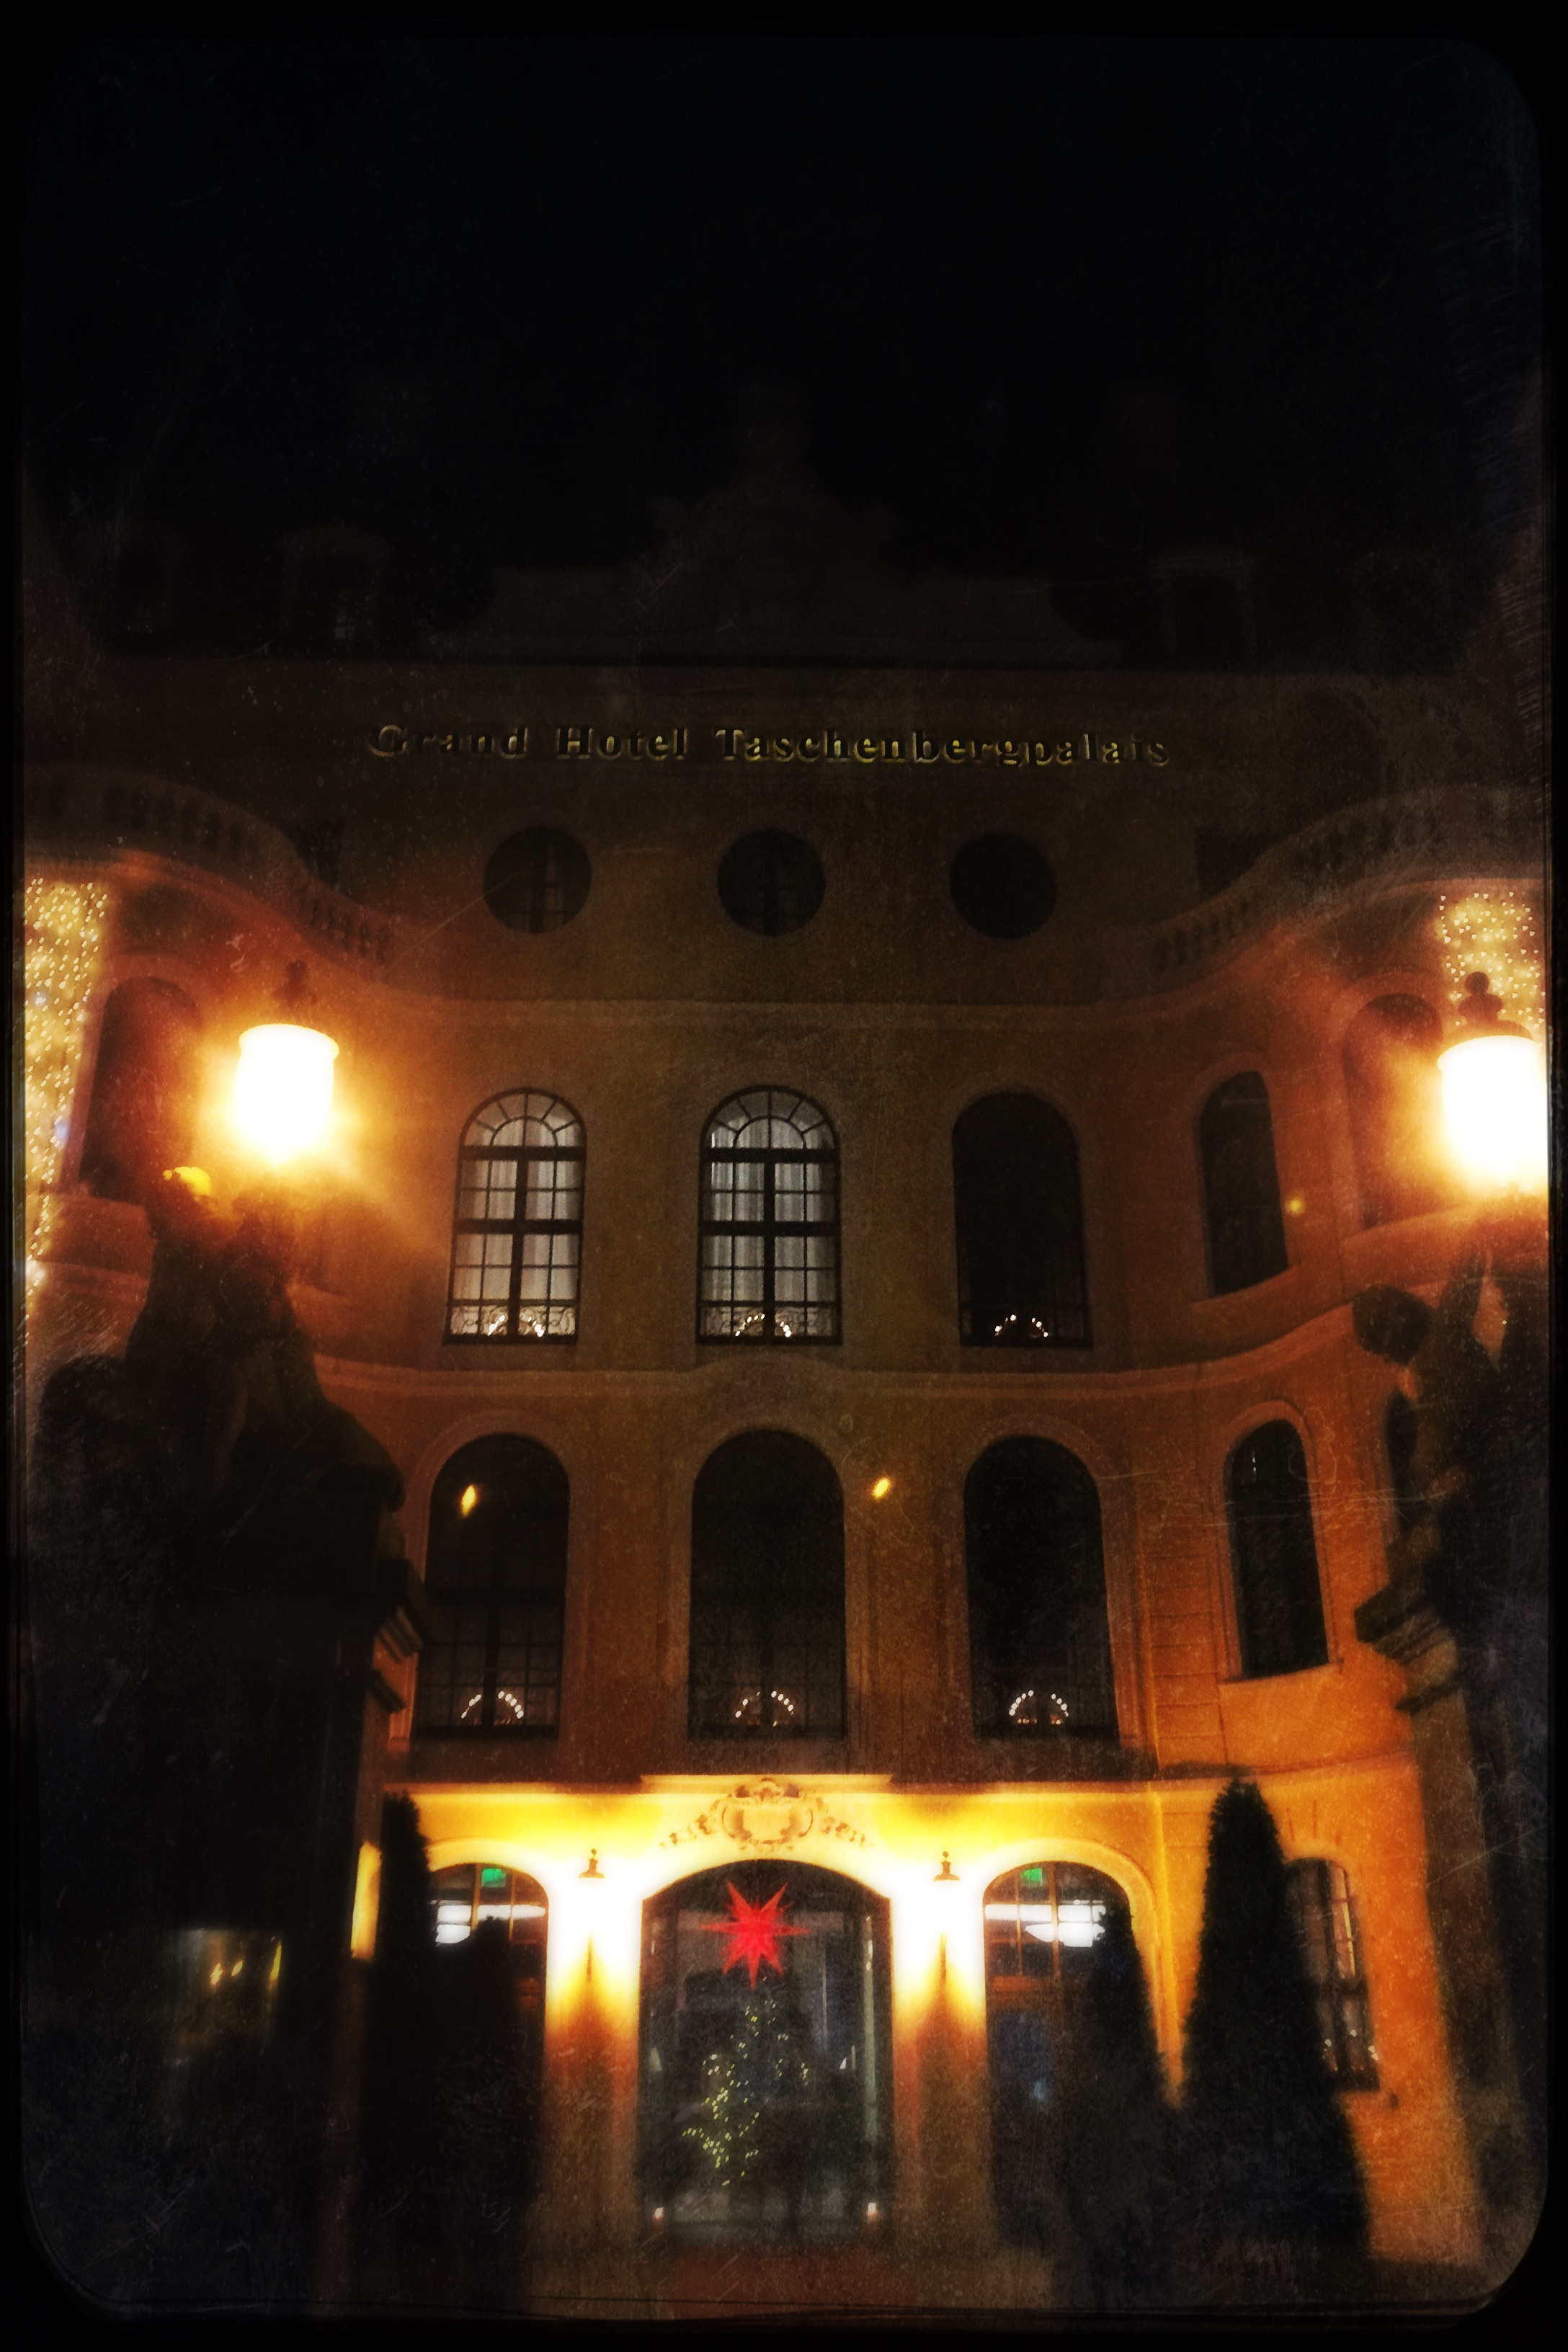 First views of the Taschenbergpalais Hotel